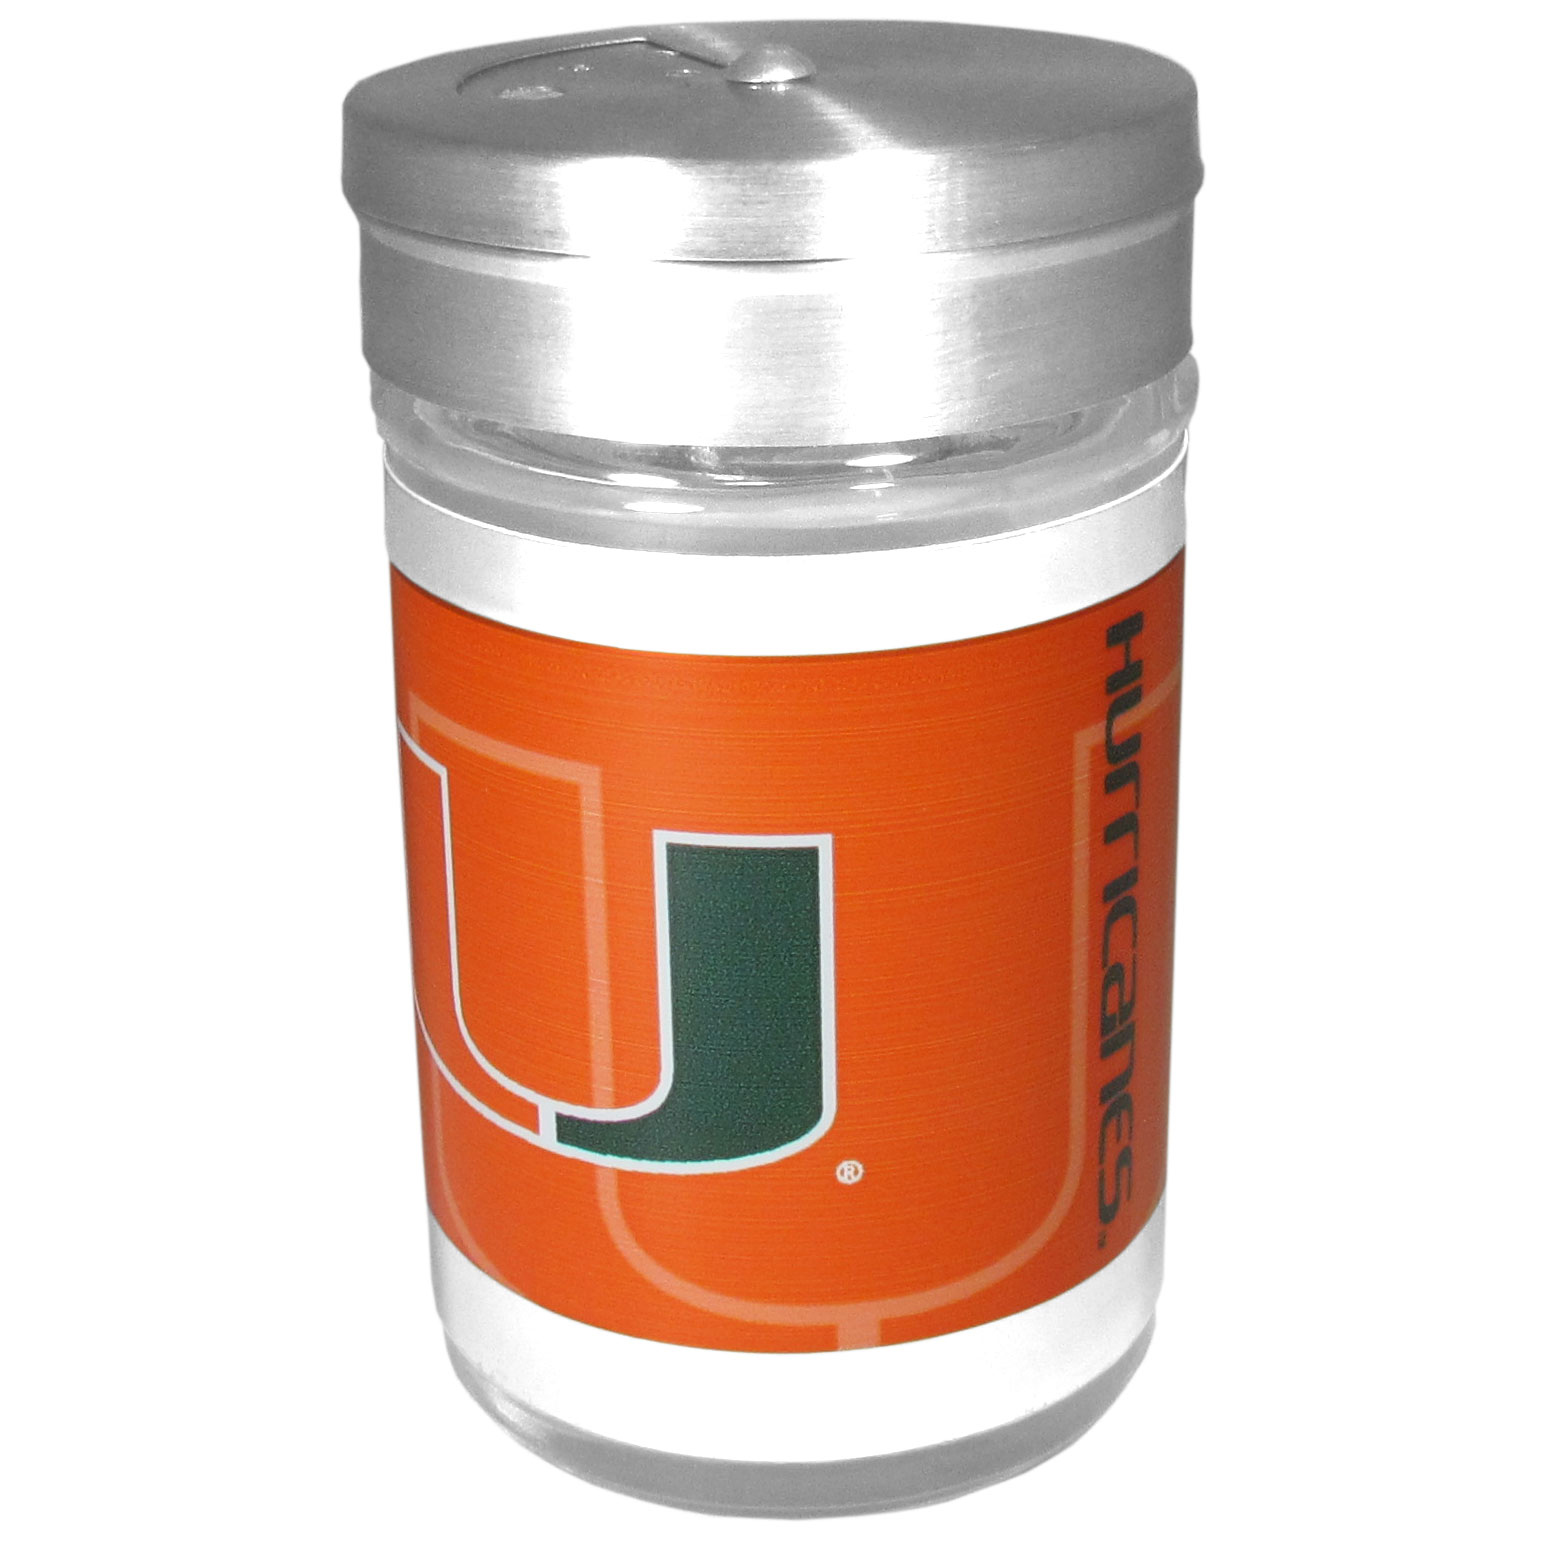 Miami Hurricanes Tailgater Season Shakers - Spice it up with our Miami Hurricanes tailgater season shakers! This compact shaker is 2 inch tall with a twist top that closes off the holes at the top making it perfect for travel preventing those messy spills. The shaker has wide holes perfect for keeping your pepper seeds or cheese toppings. The bright team graphics will make you the envy of the other fans while you are grilling up your tailgating goodies.